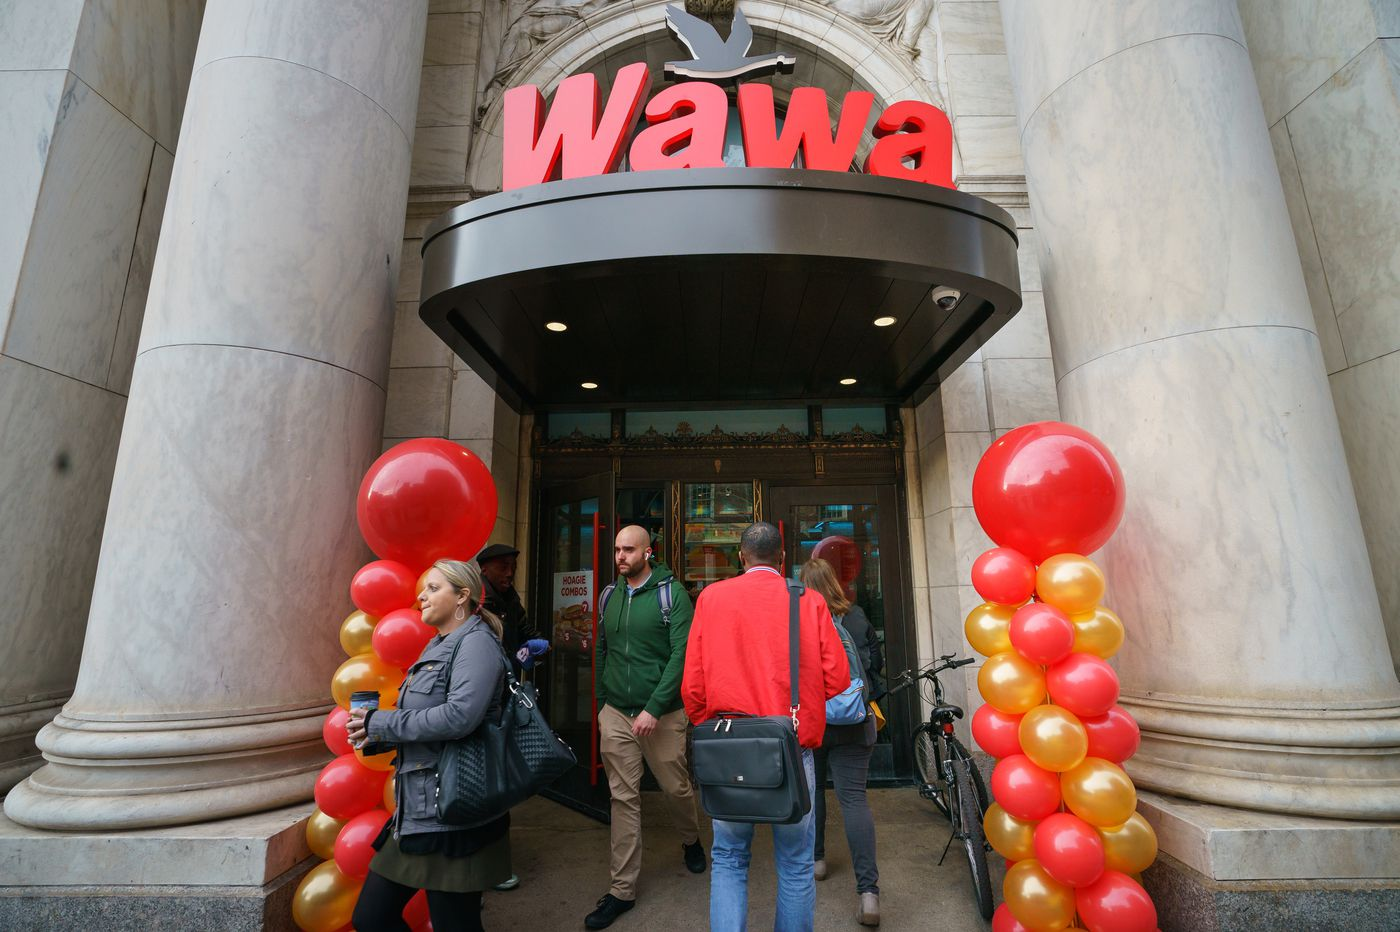 Wawa Works to Contain Damage from Data Breach